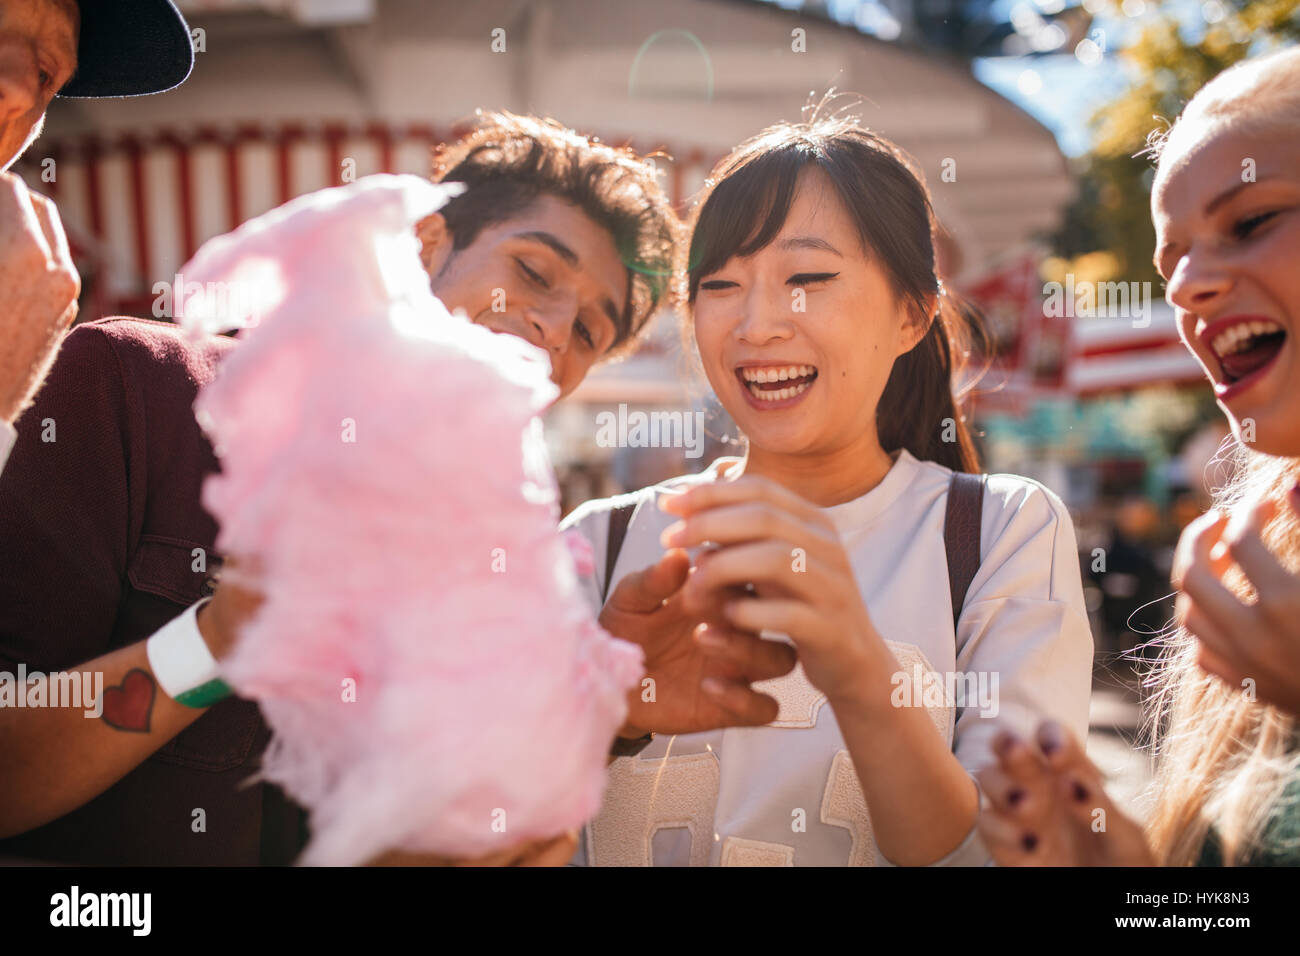 Groupe d'amis manger candyfloss au parc d'amusement. Smiling young personnes partageant la barbe à Photo Stock